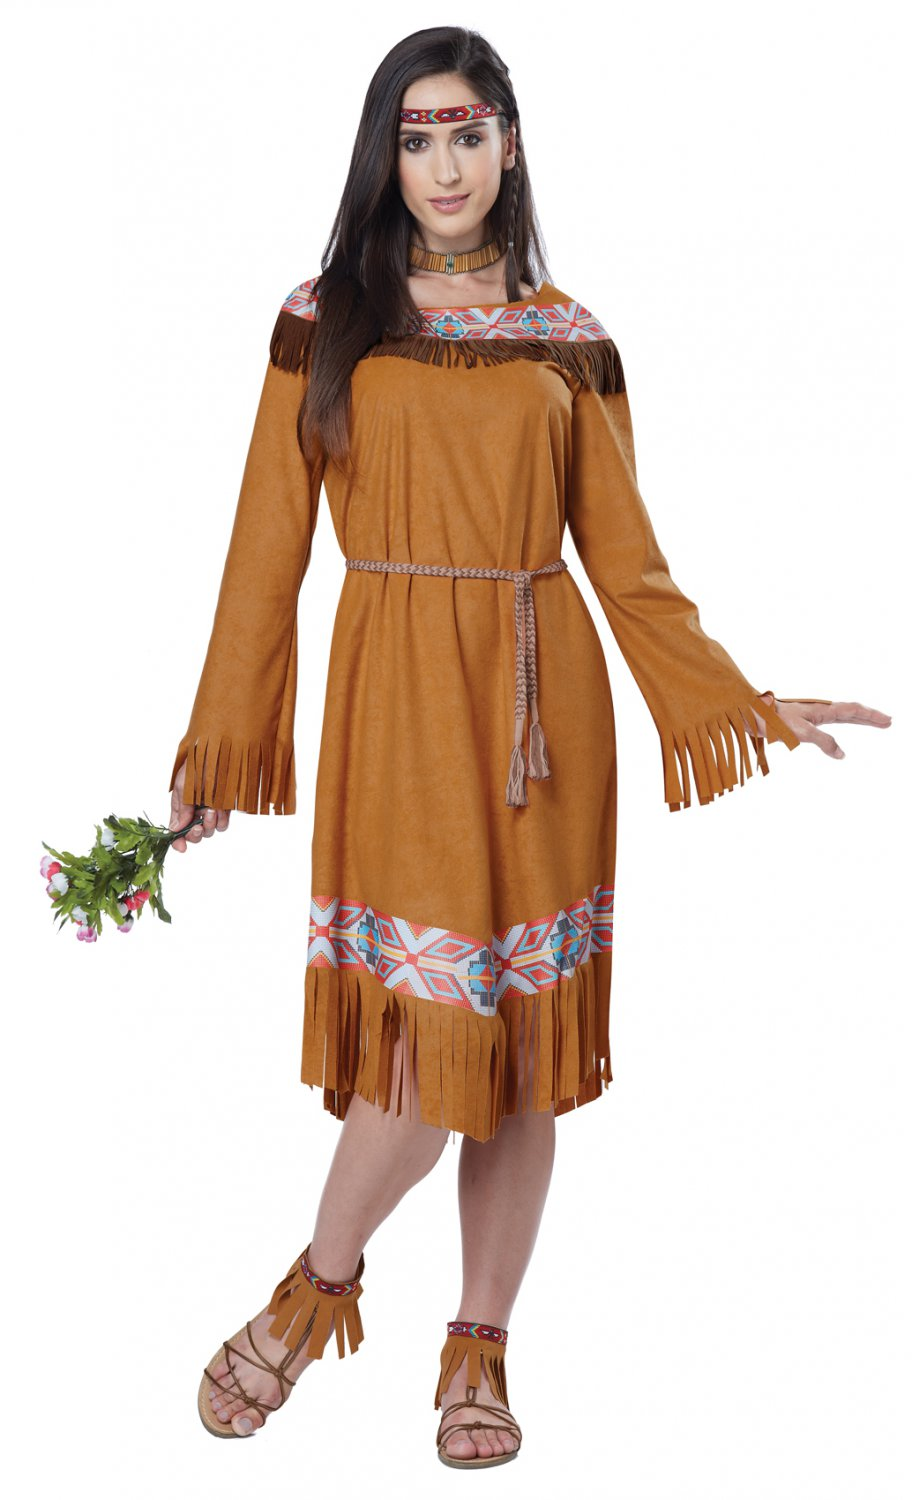 Thanksgiving Pocahontas Indian Maiden Adult Costume Size: X-Large #01594